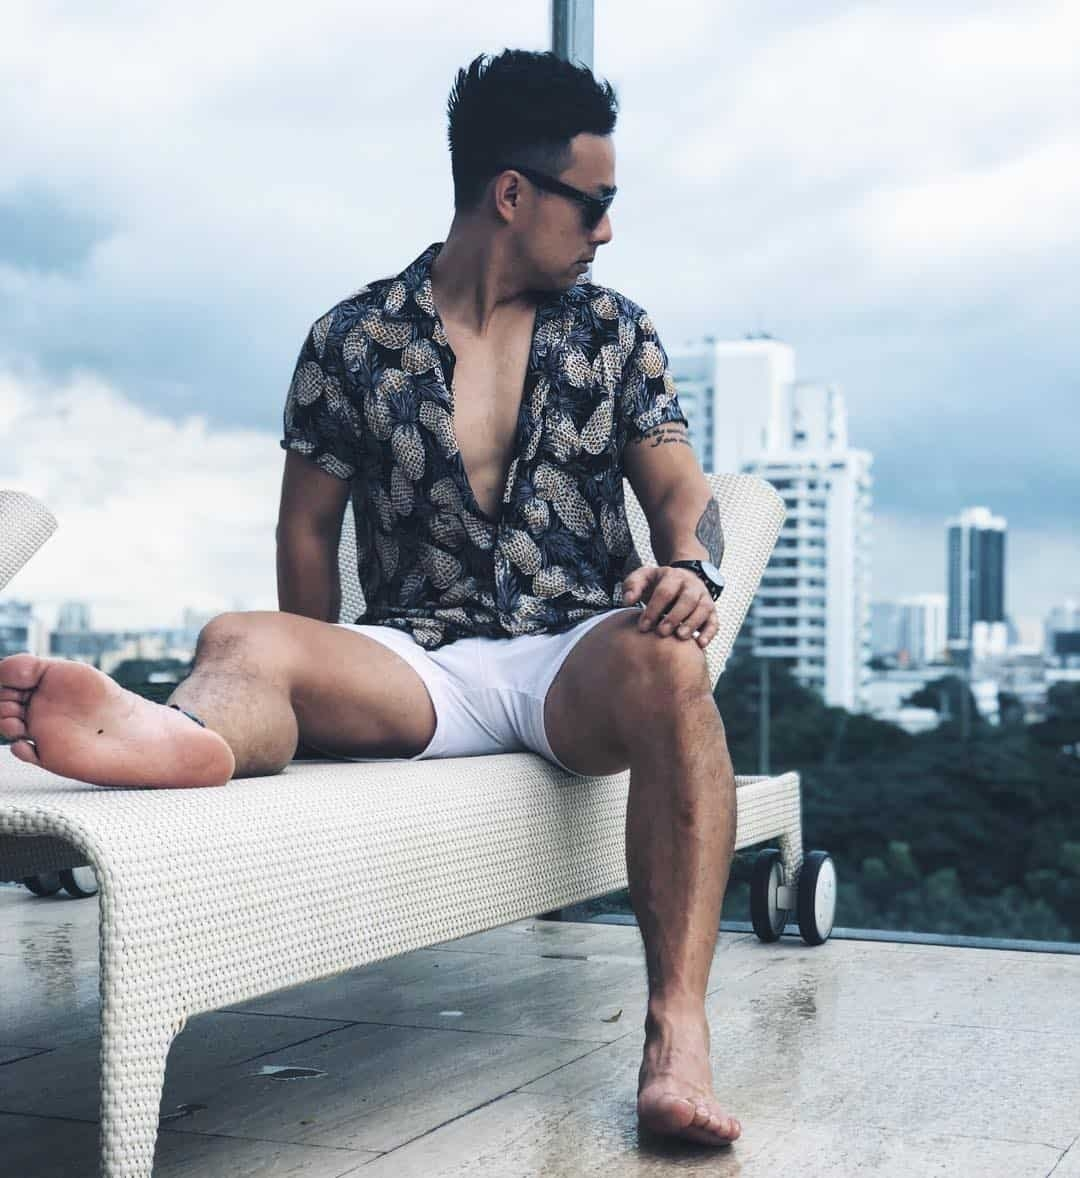 top 6 mens shorts styles 2020 best options for shorts for